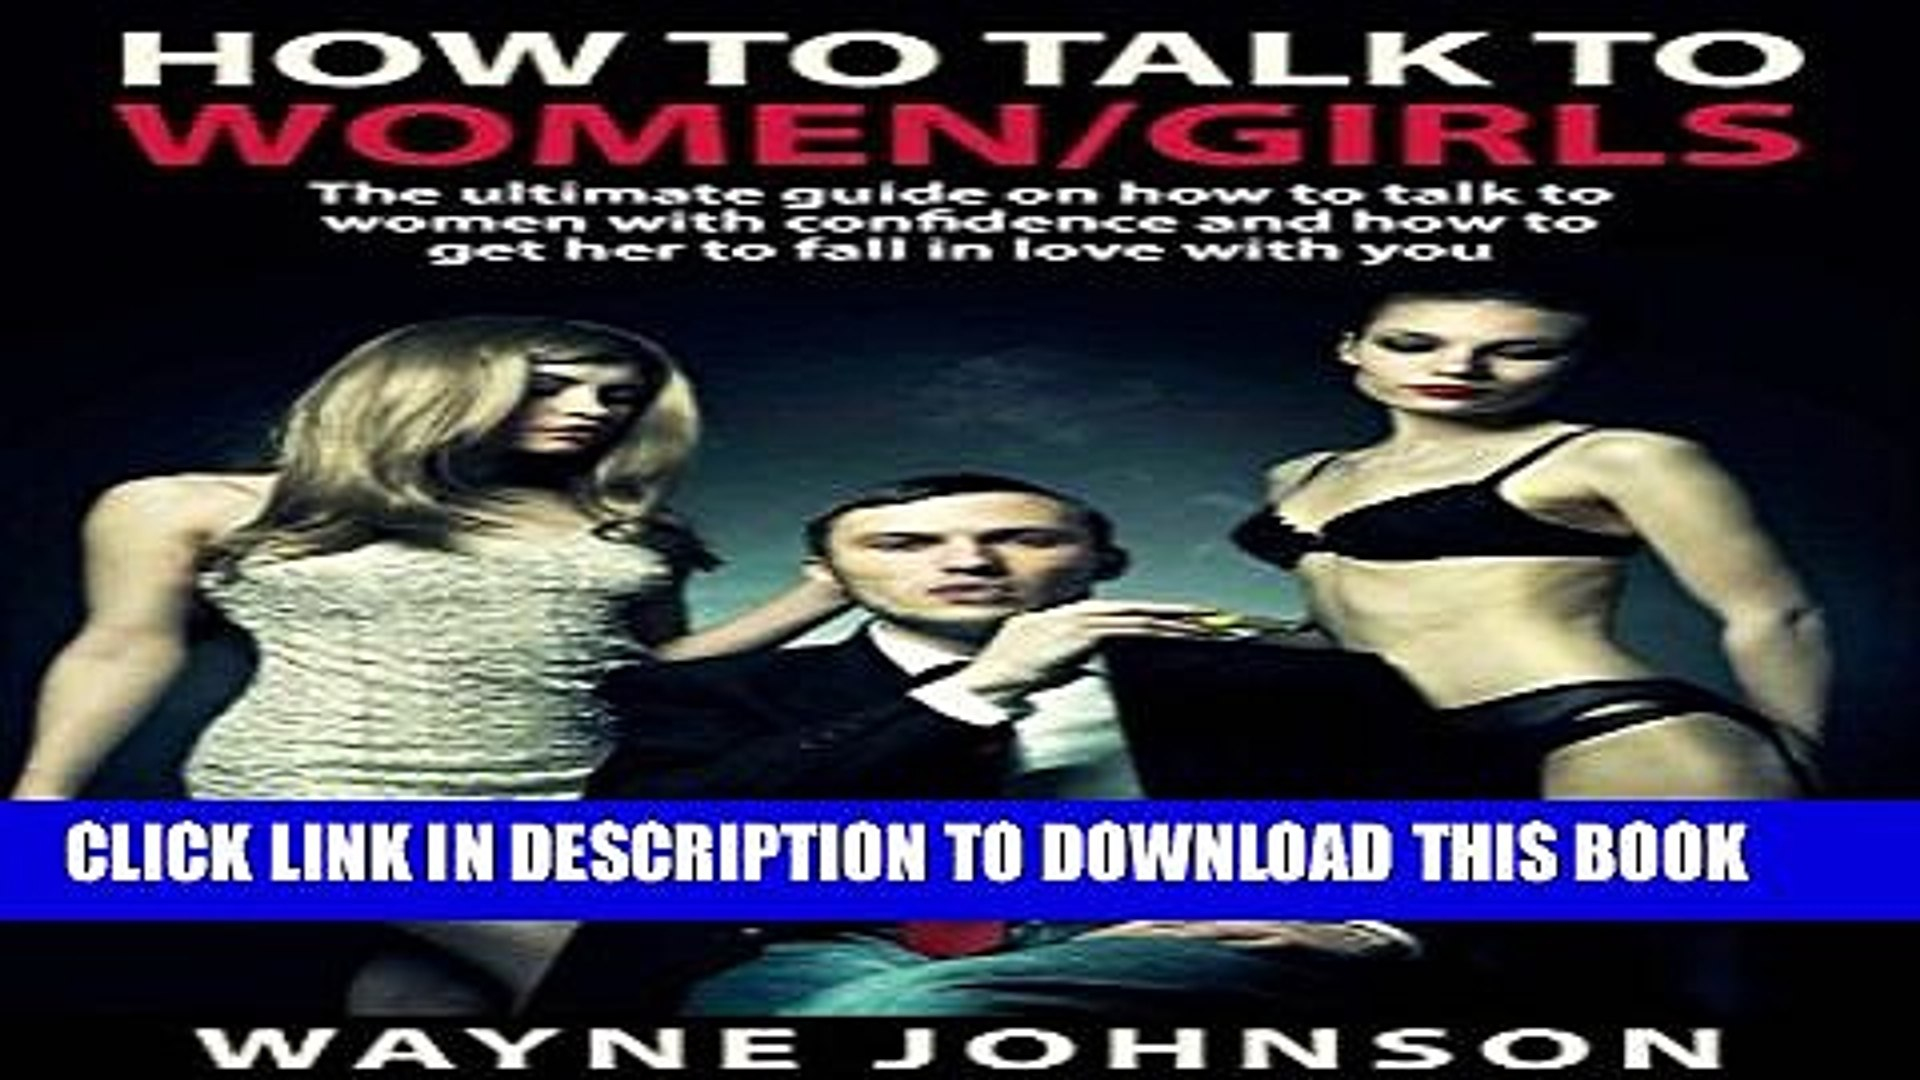 [PDF] How To Talk To Women/Girls: The Ultimate On How To Talk To Ladies With Confidence and How To